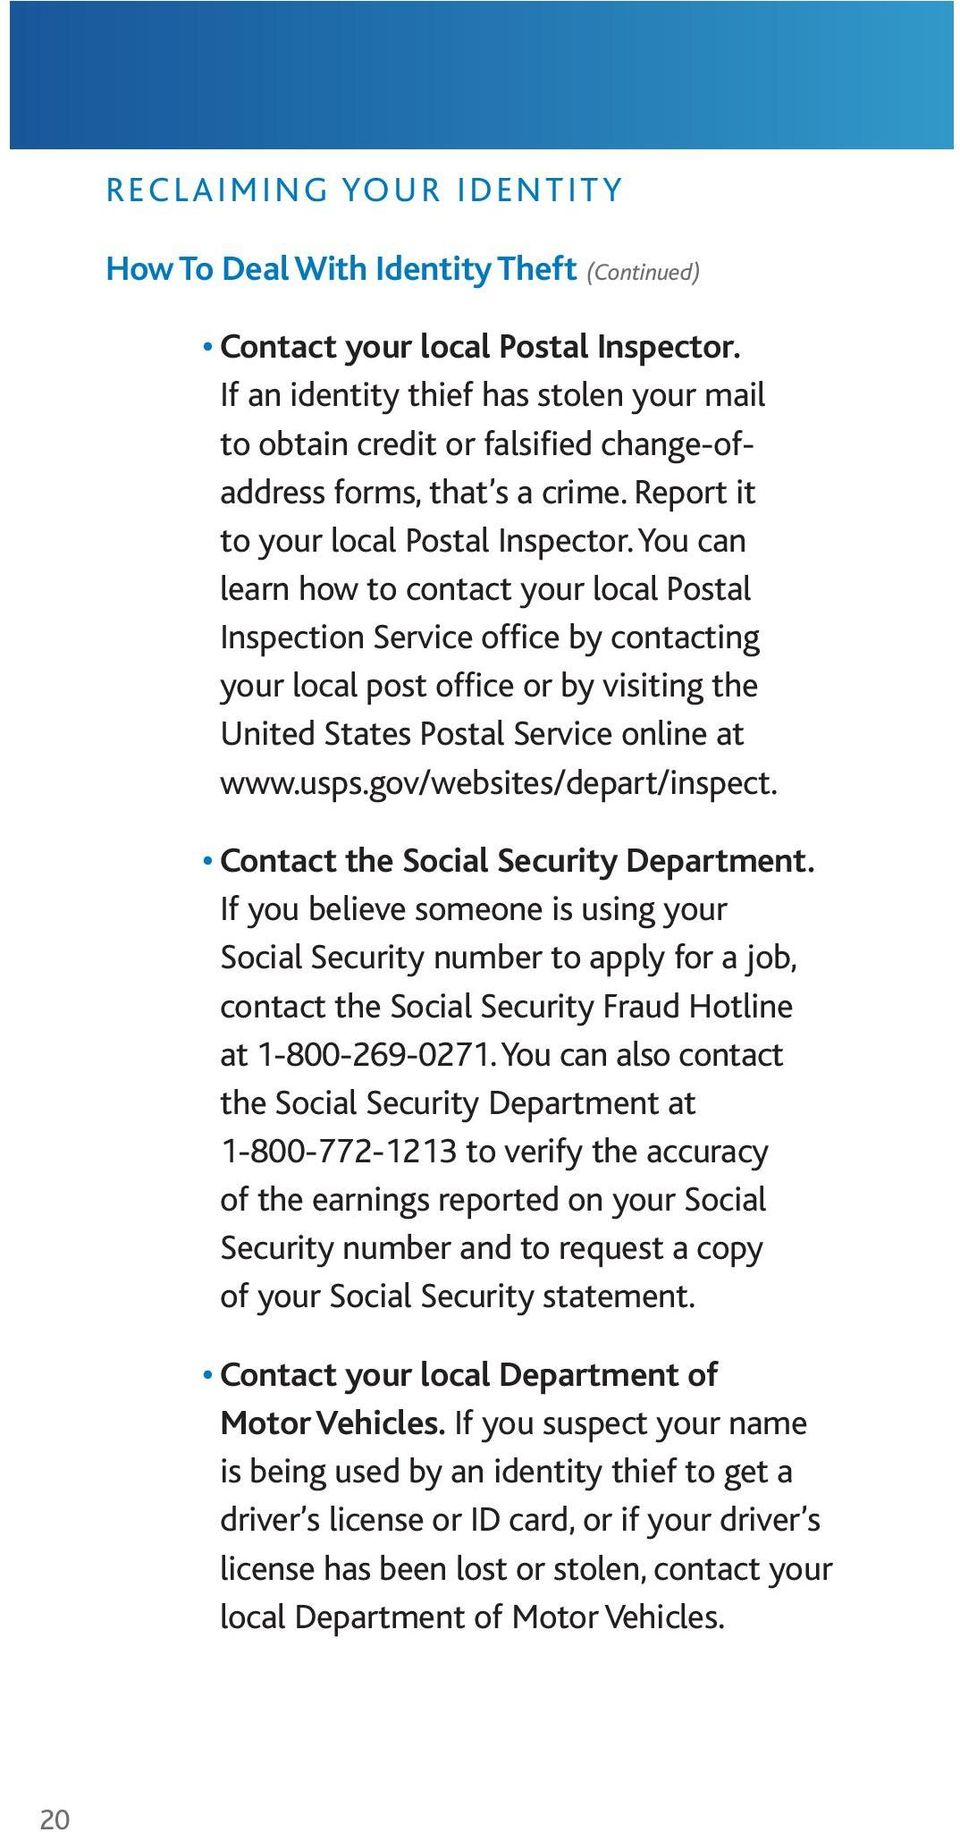 You can learn how to contact your local Postal Inspection Service office by contacting your local post office or by visiting the United States Postal Service online at www.usps.